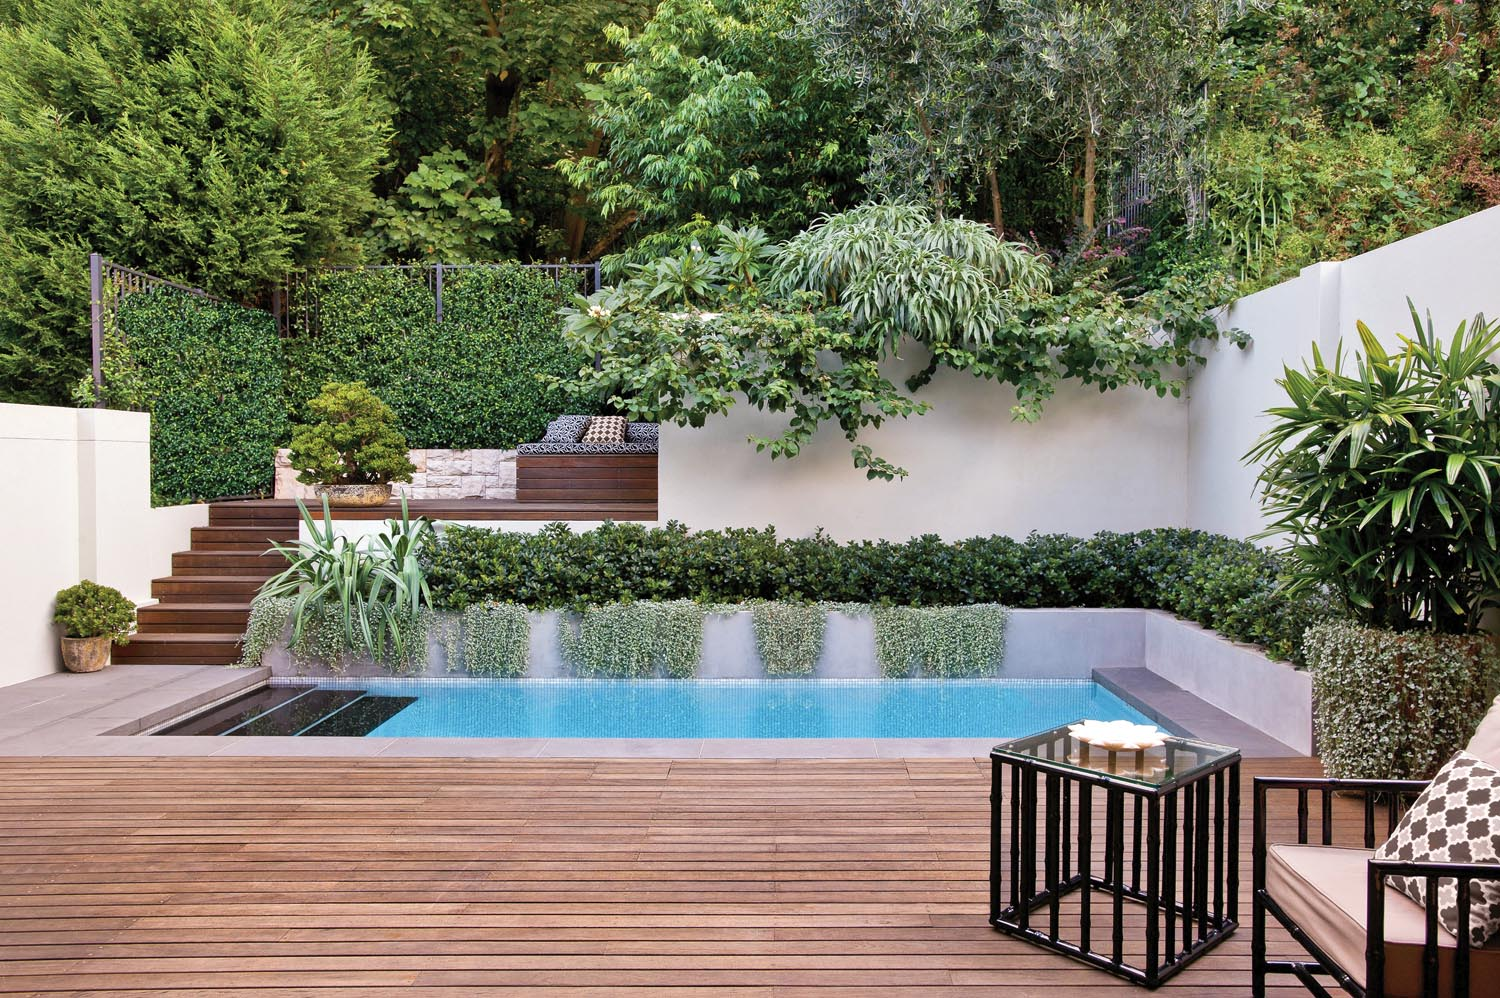 PSS023_Good Manors pool+garden_Hero_Image